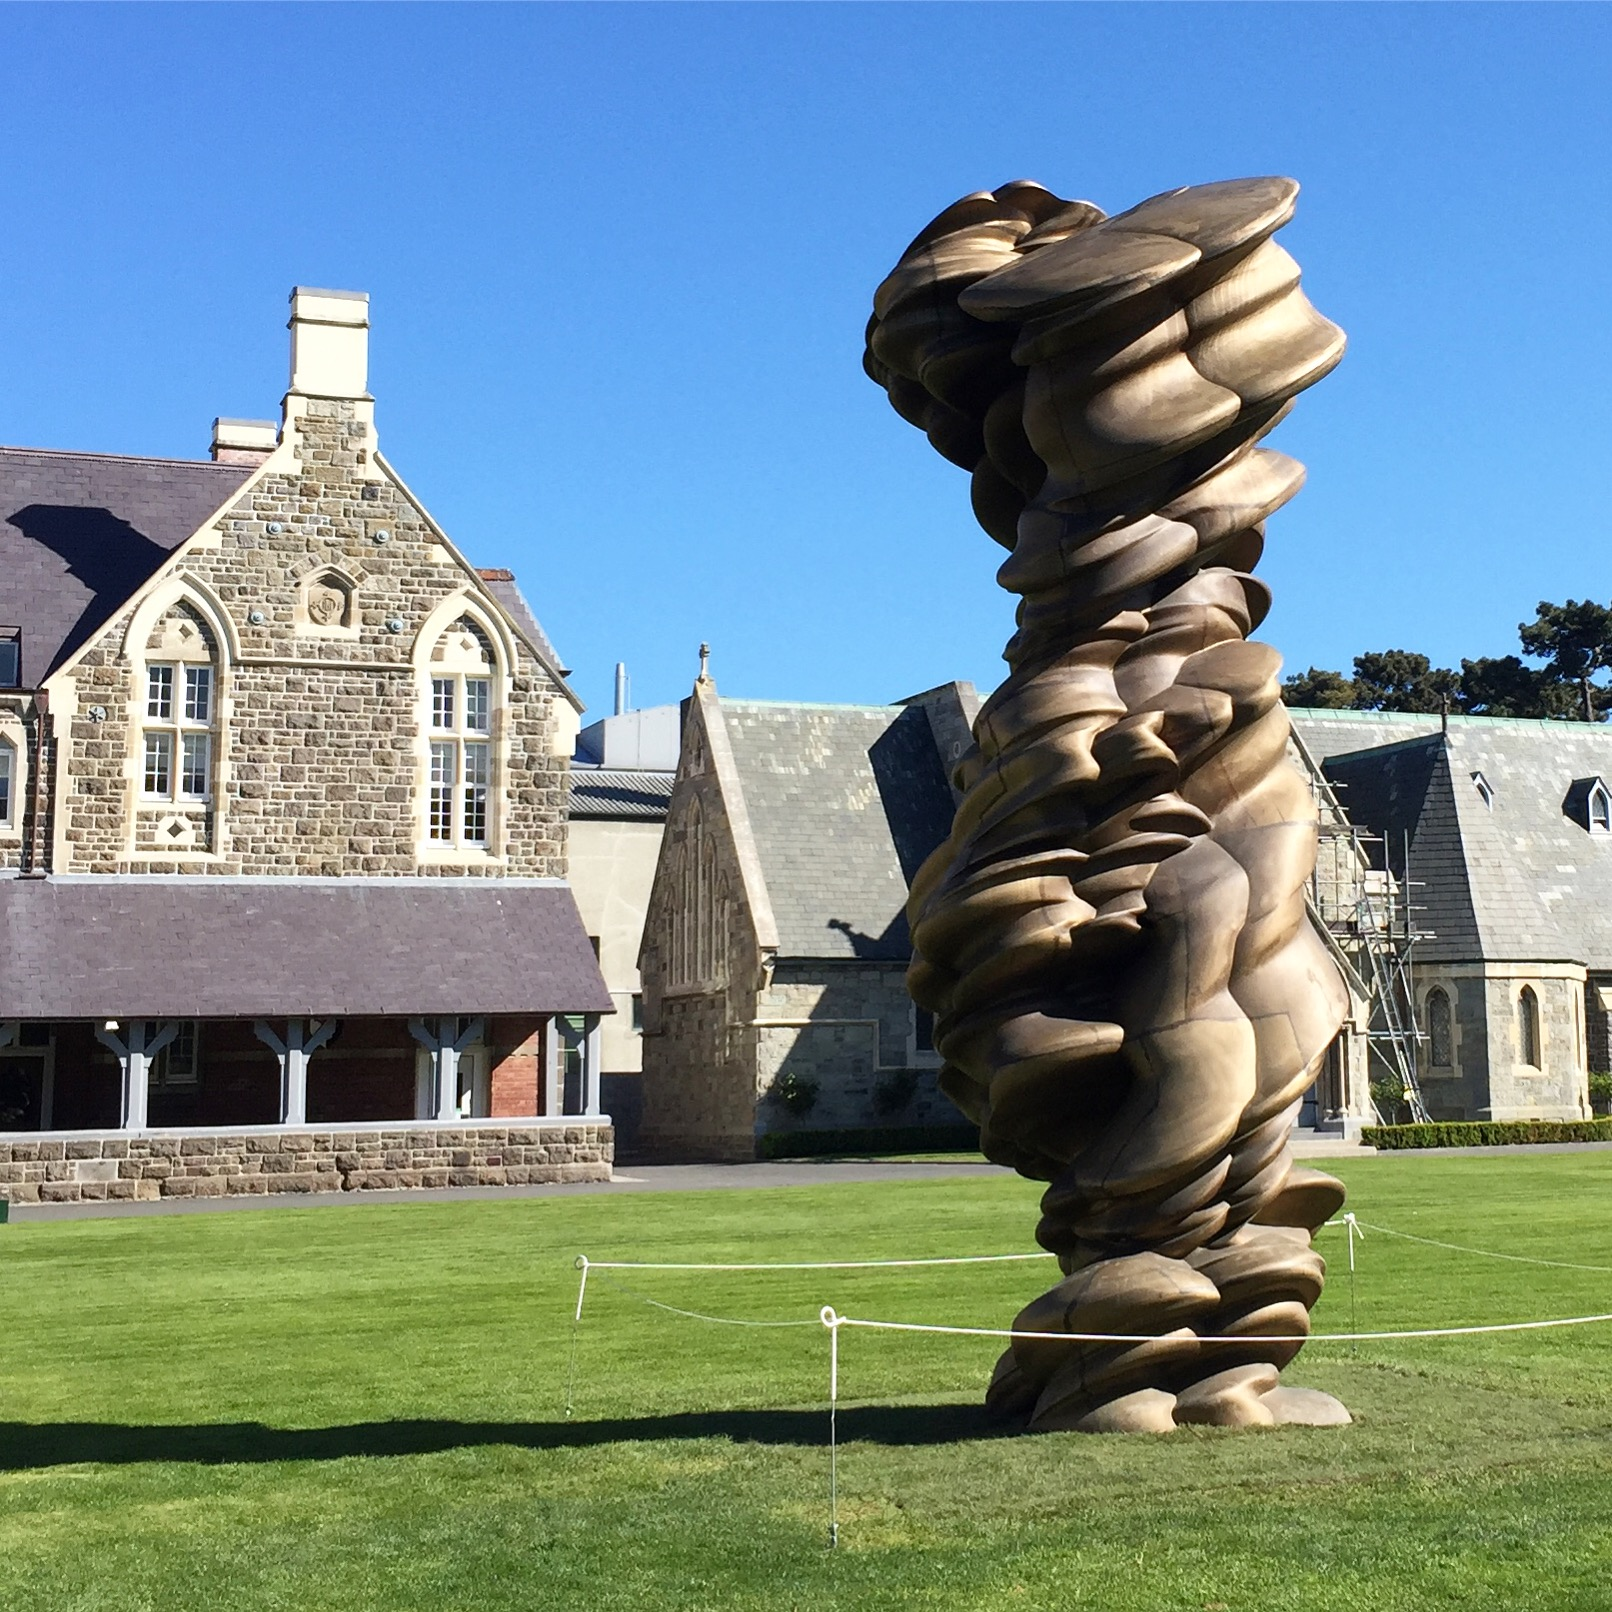 Tony Cragg in SCAPE Public Art Festival, Christchurch